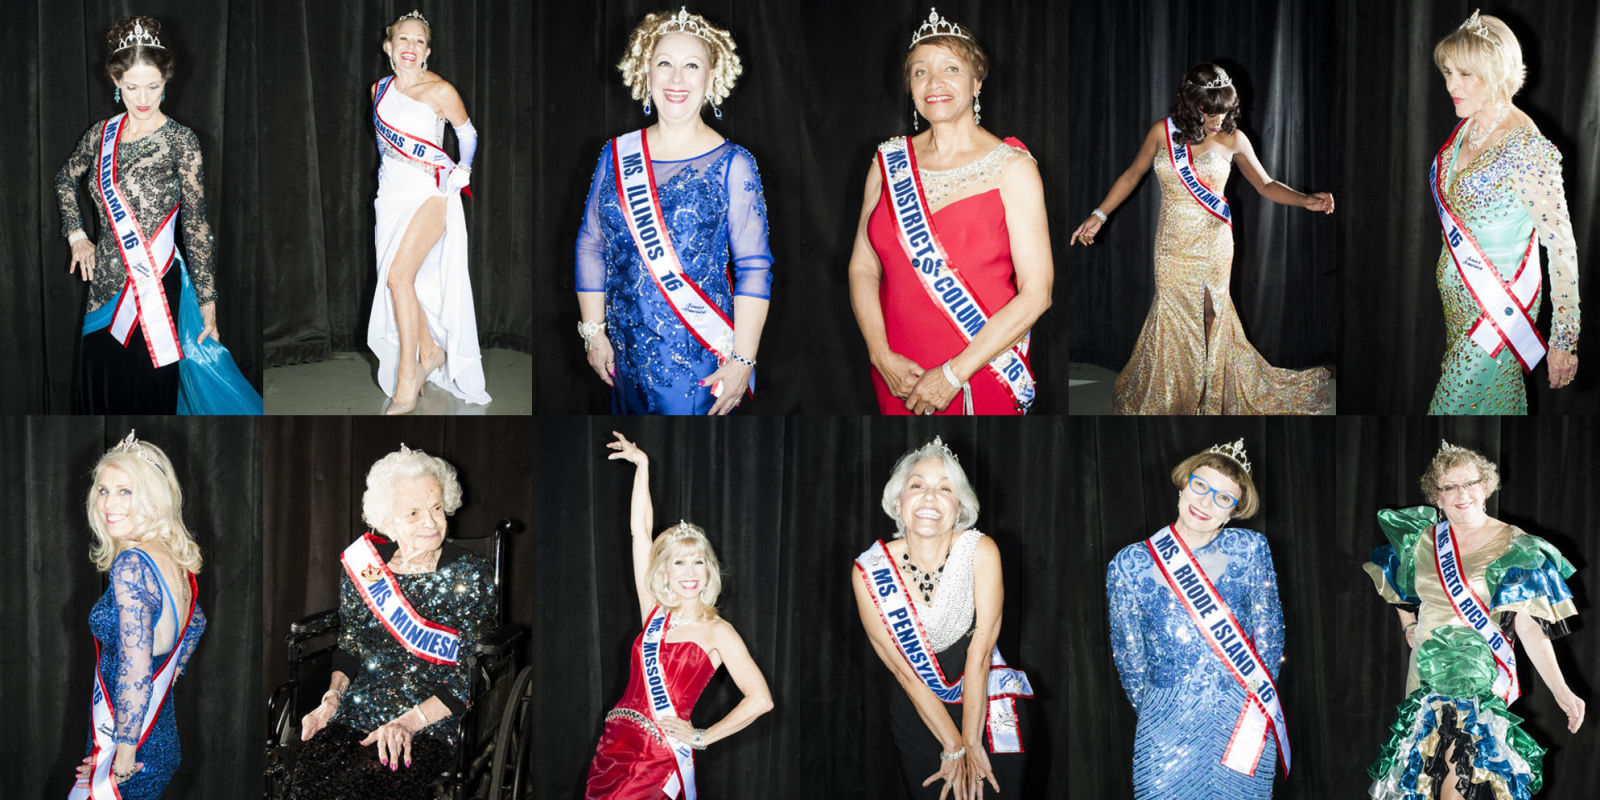 The 2016 National Ms. Senior America Pageant: Meet the